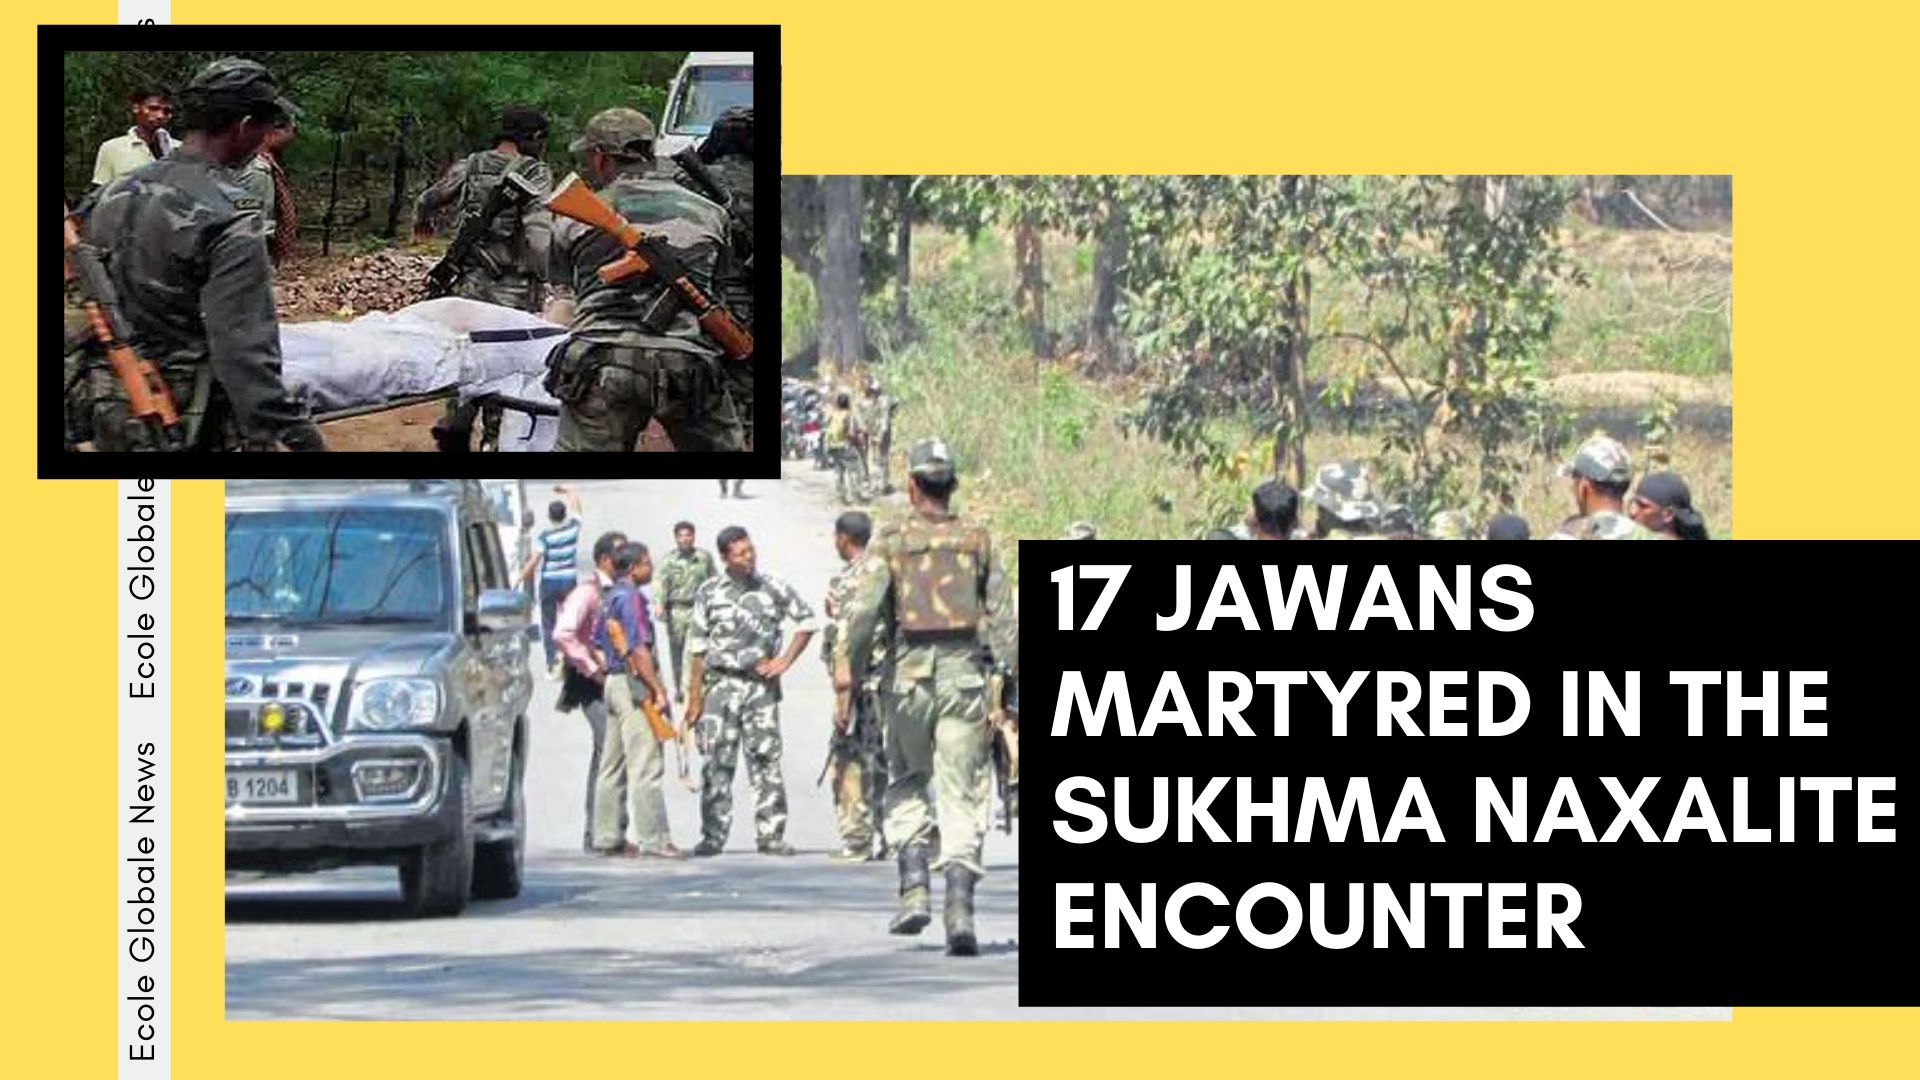 ATLEAST 17 JAWANS MARTYRED IN THE SUKHMA NAXALITE ENCOUNTER